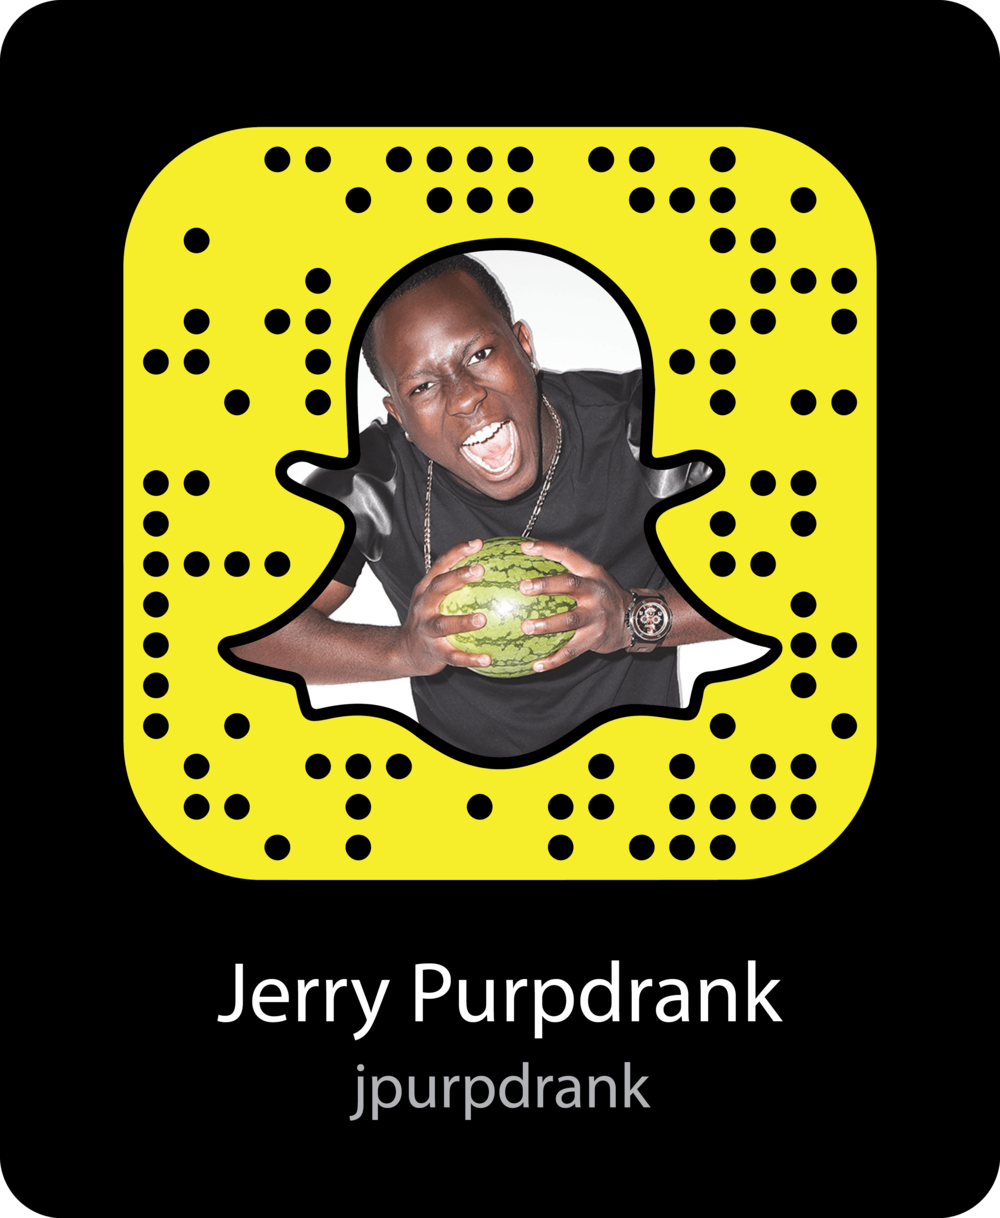 jerry-purpdrank-vine-celebrity-snapchat-snapcode